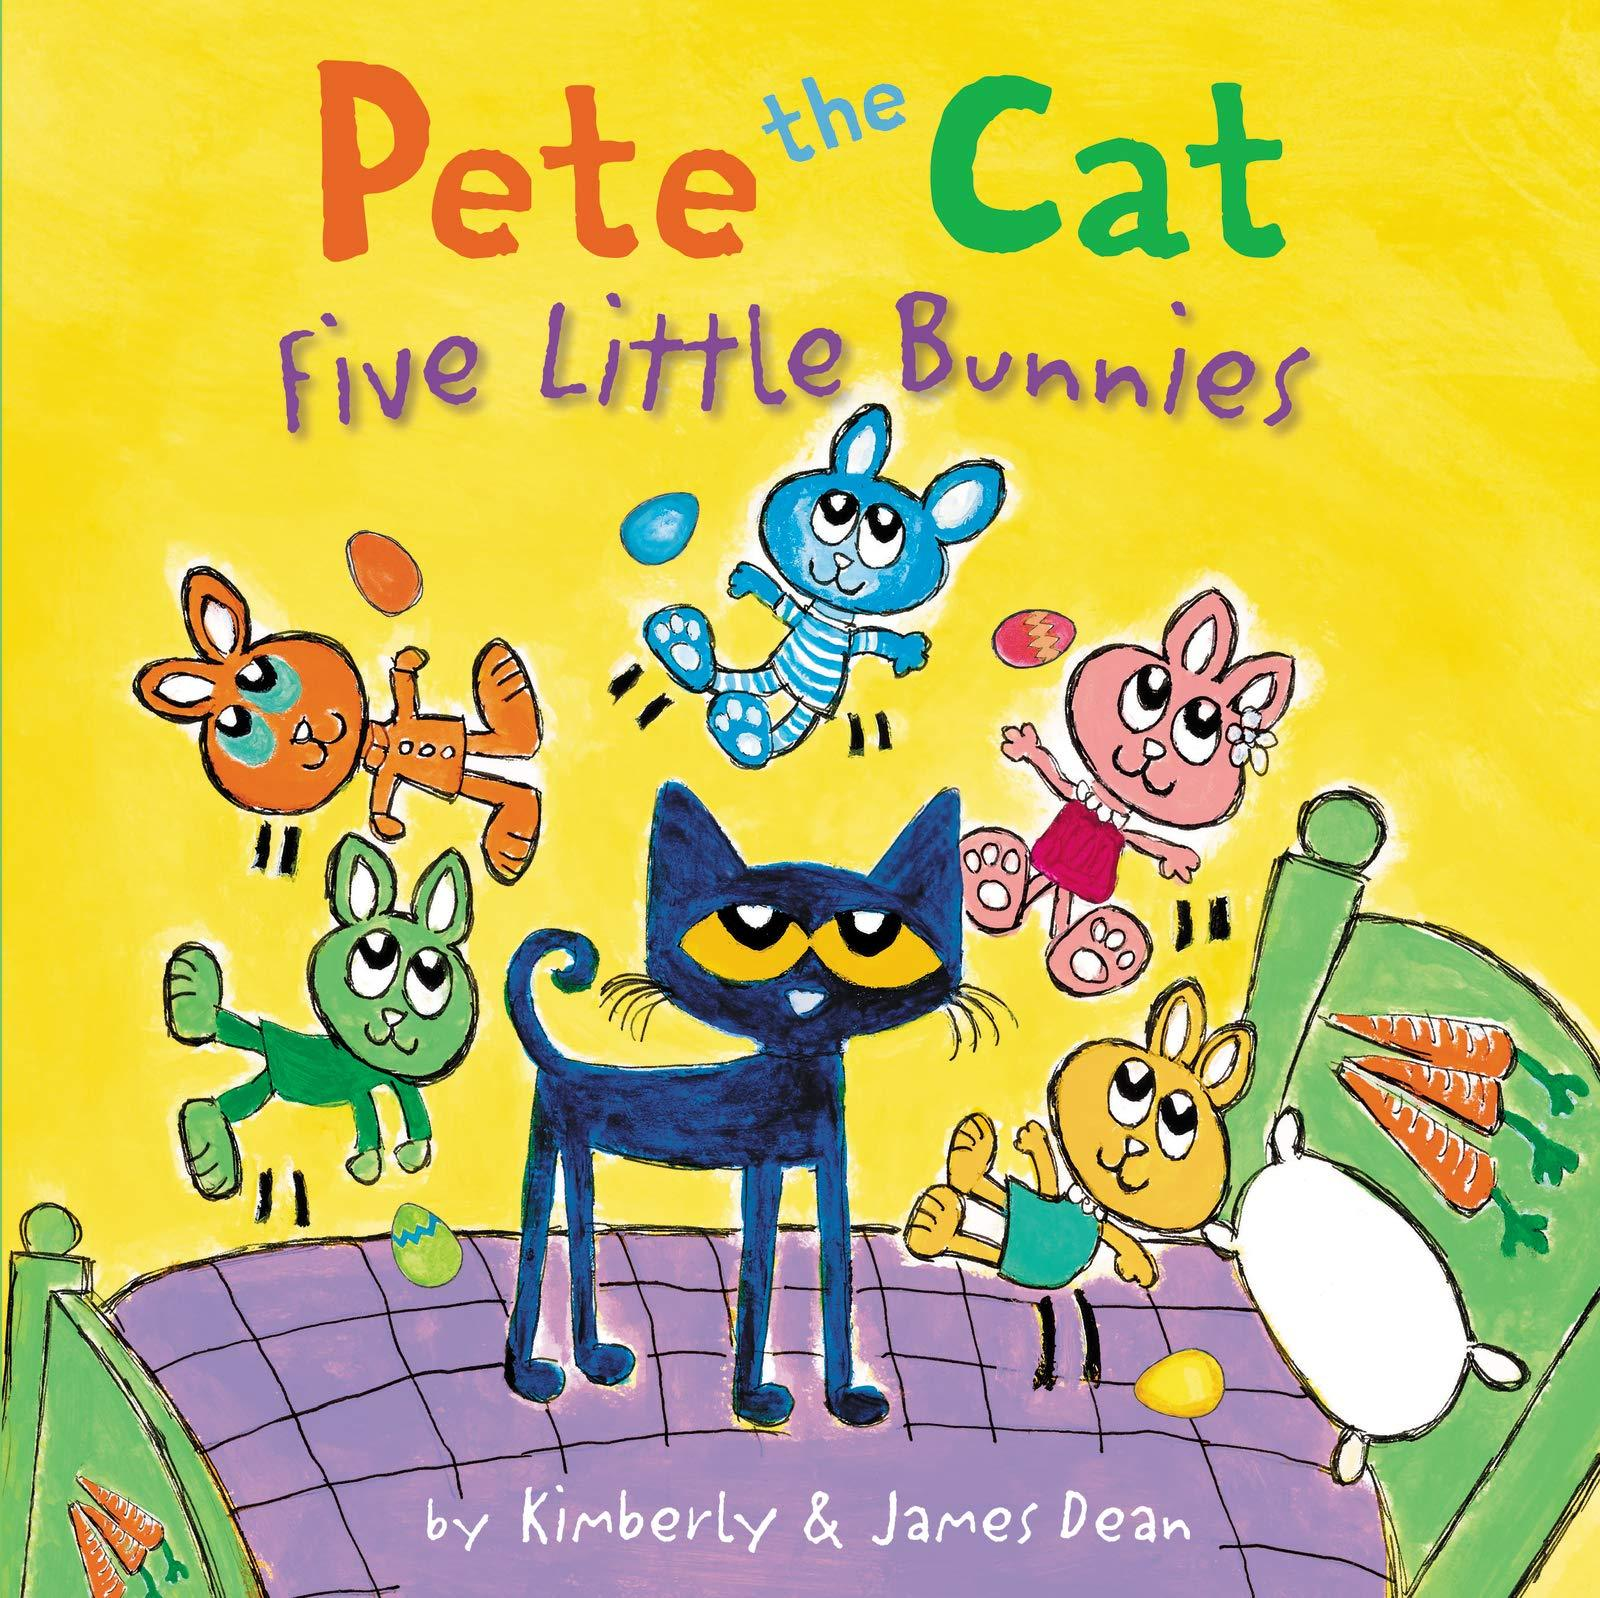 Pete the Cat: Five Little Bunnies